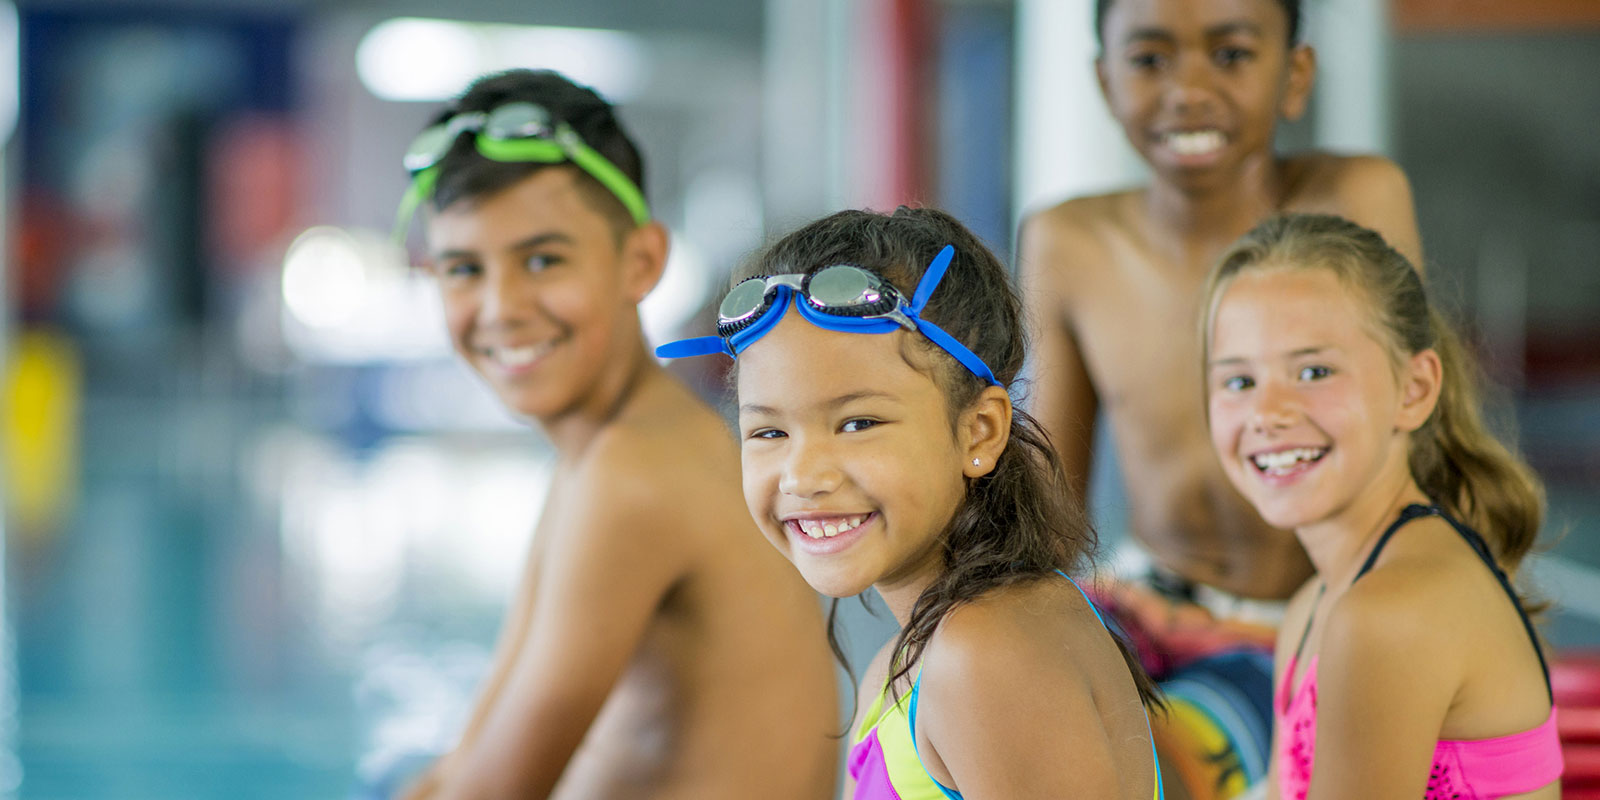 Smiling children sit by the edge of a swimming pool